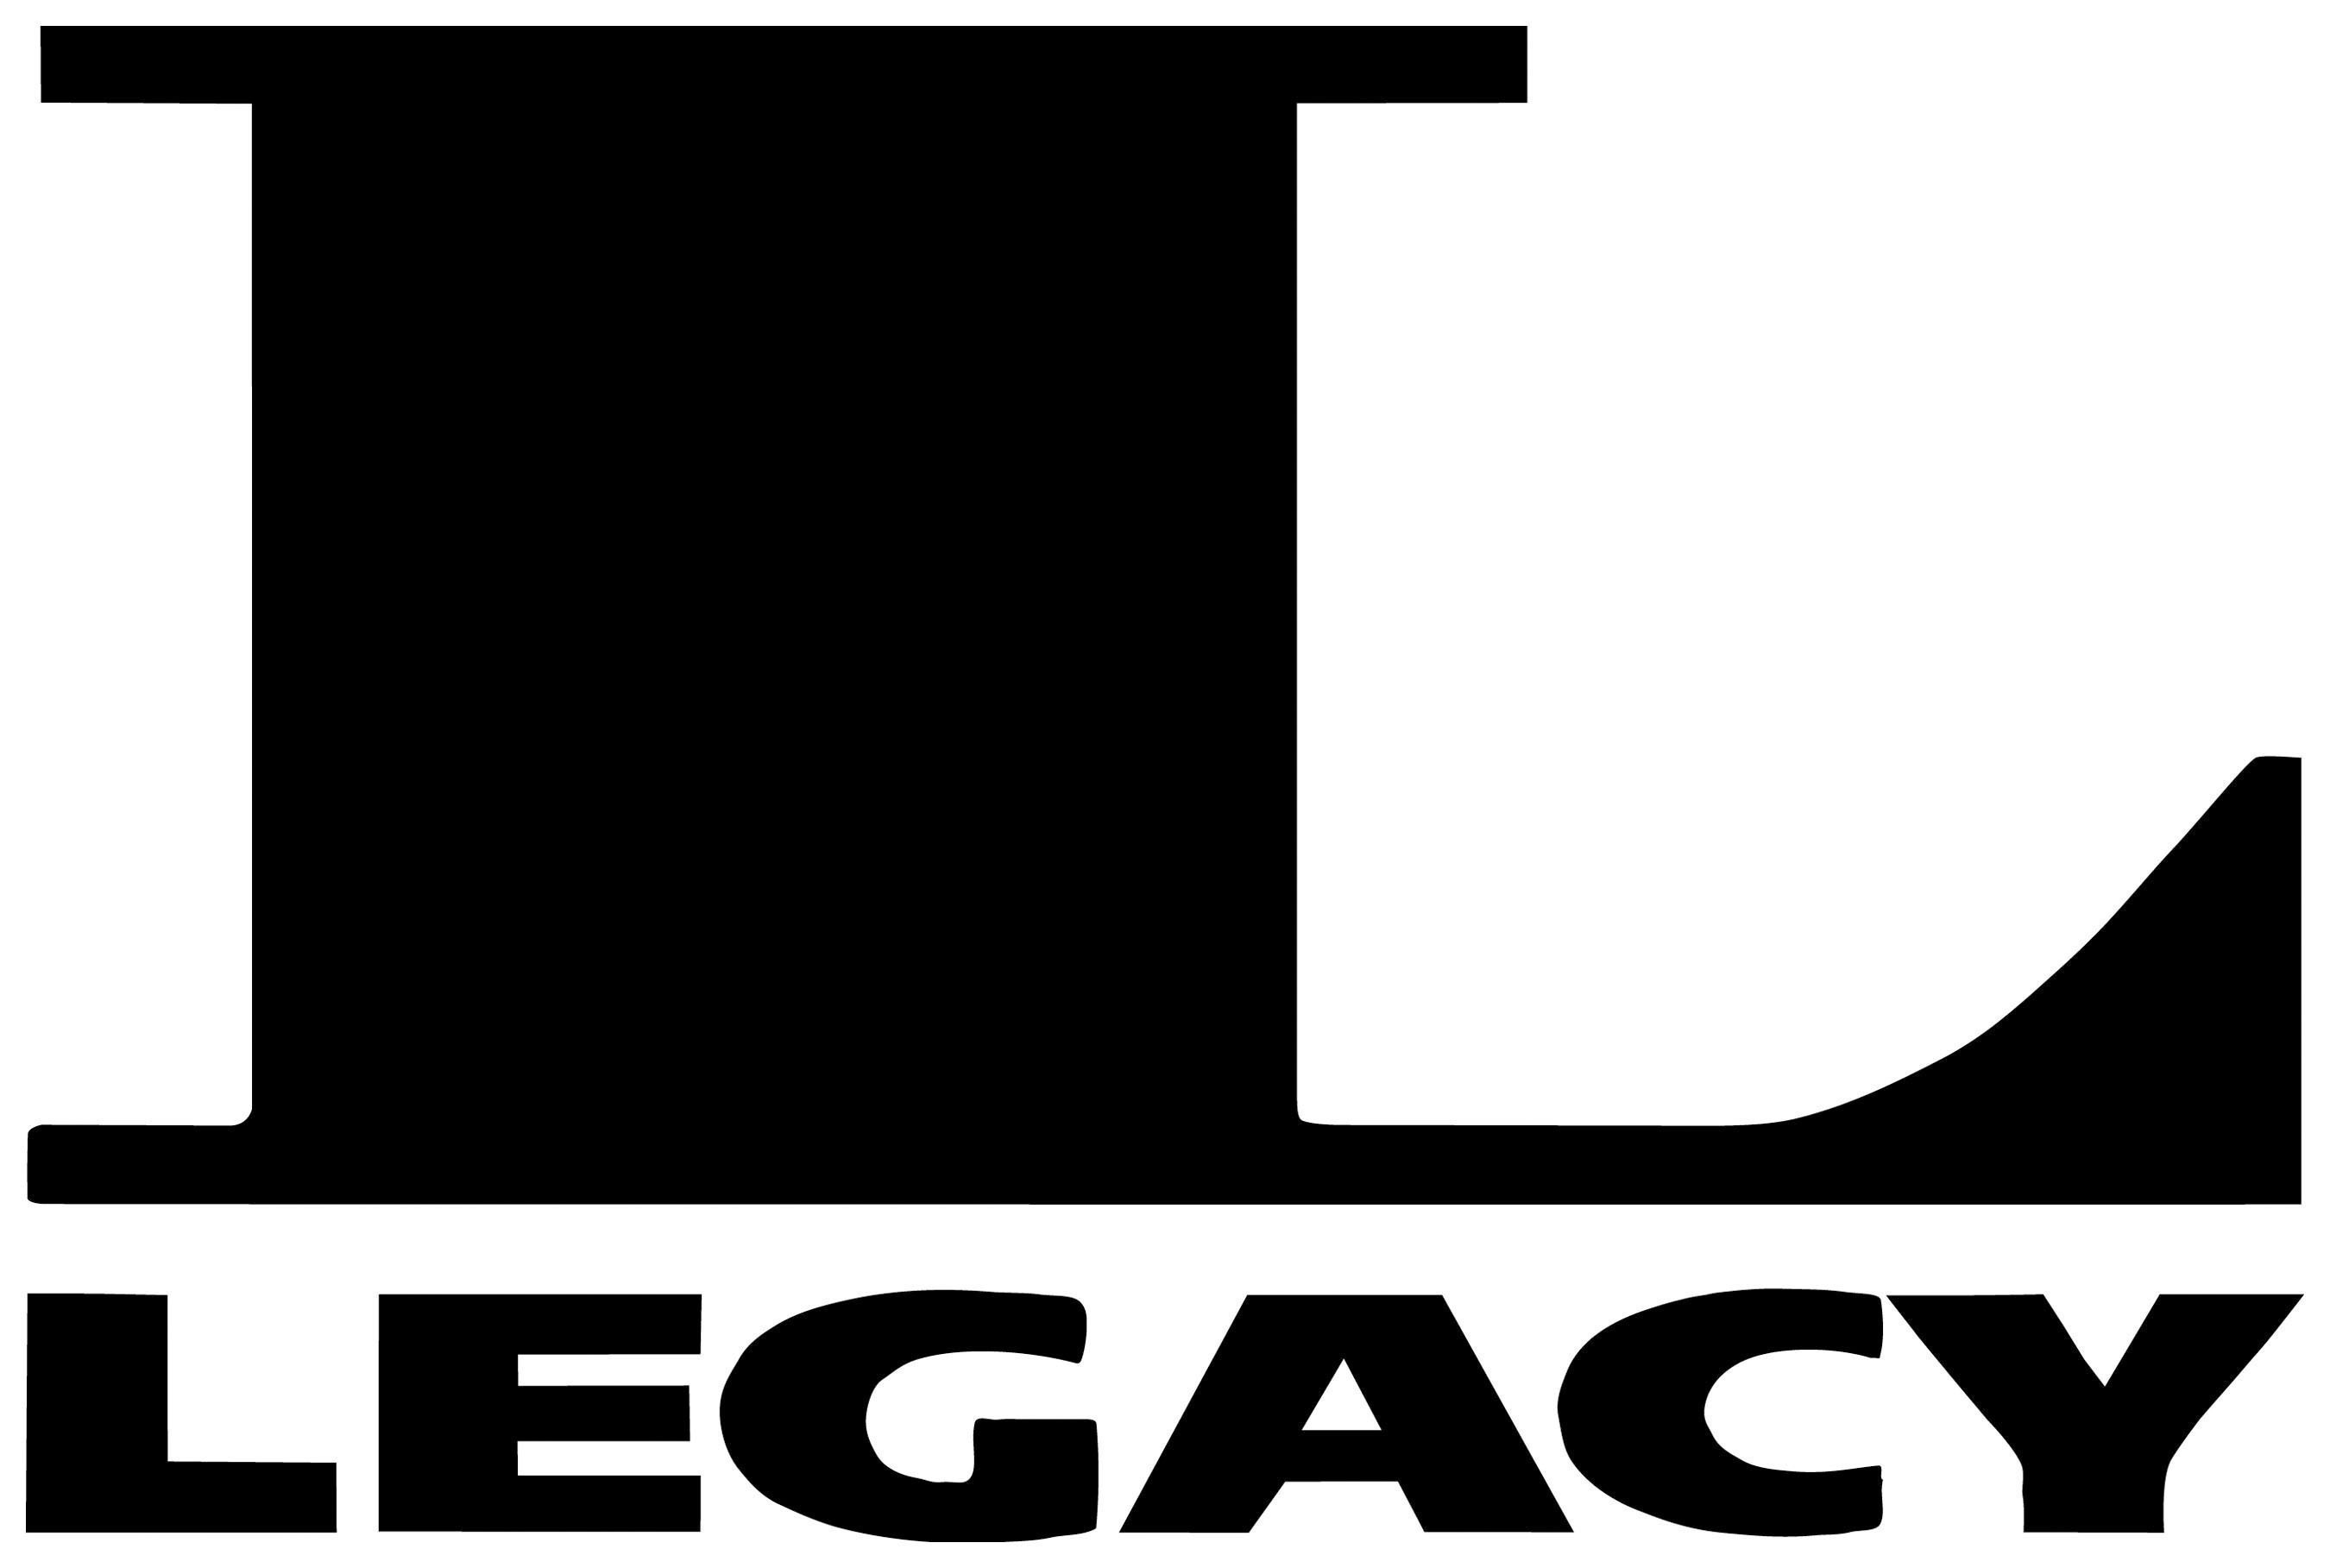 Legacy Recordings logo. Division of SONY Music Entertainment